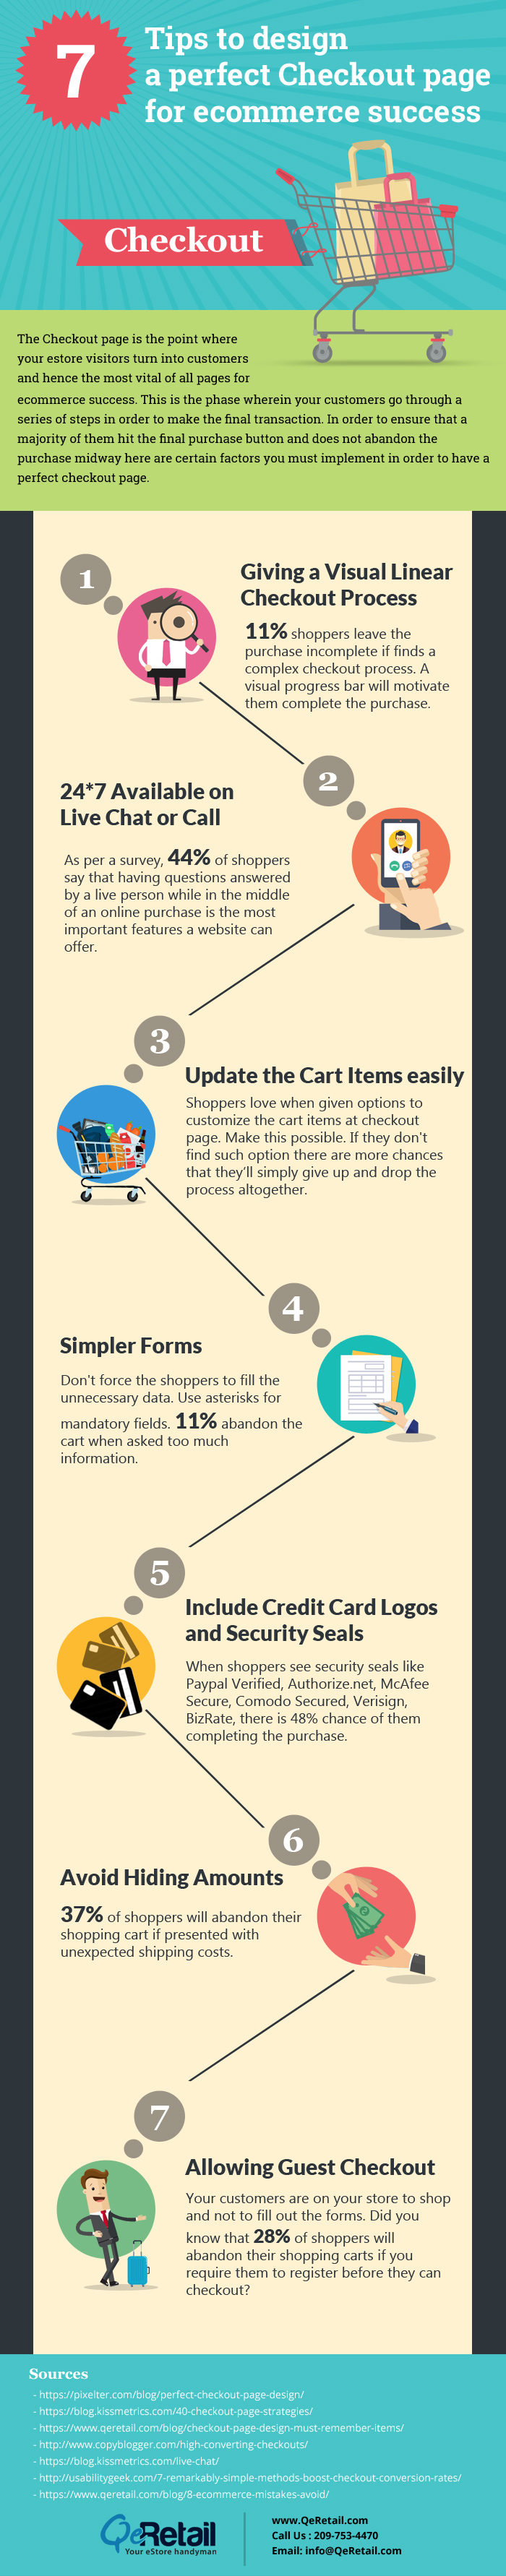 7 Tips to design a perfect Checkout page for ecommerce success